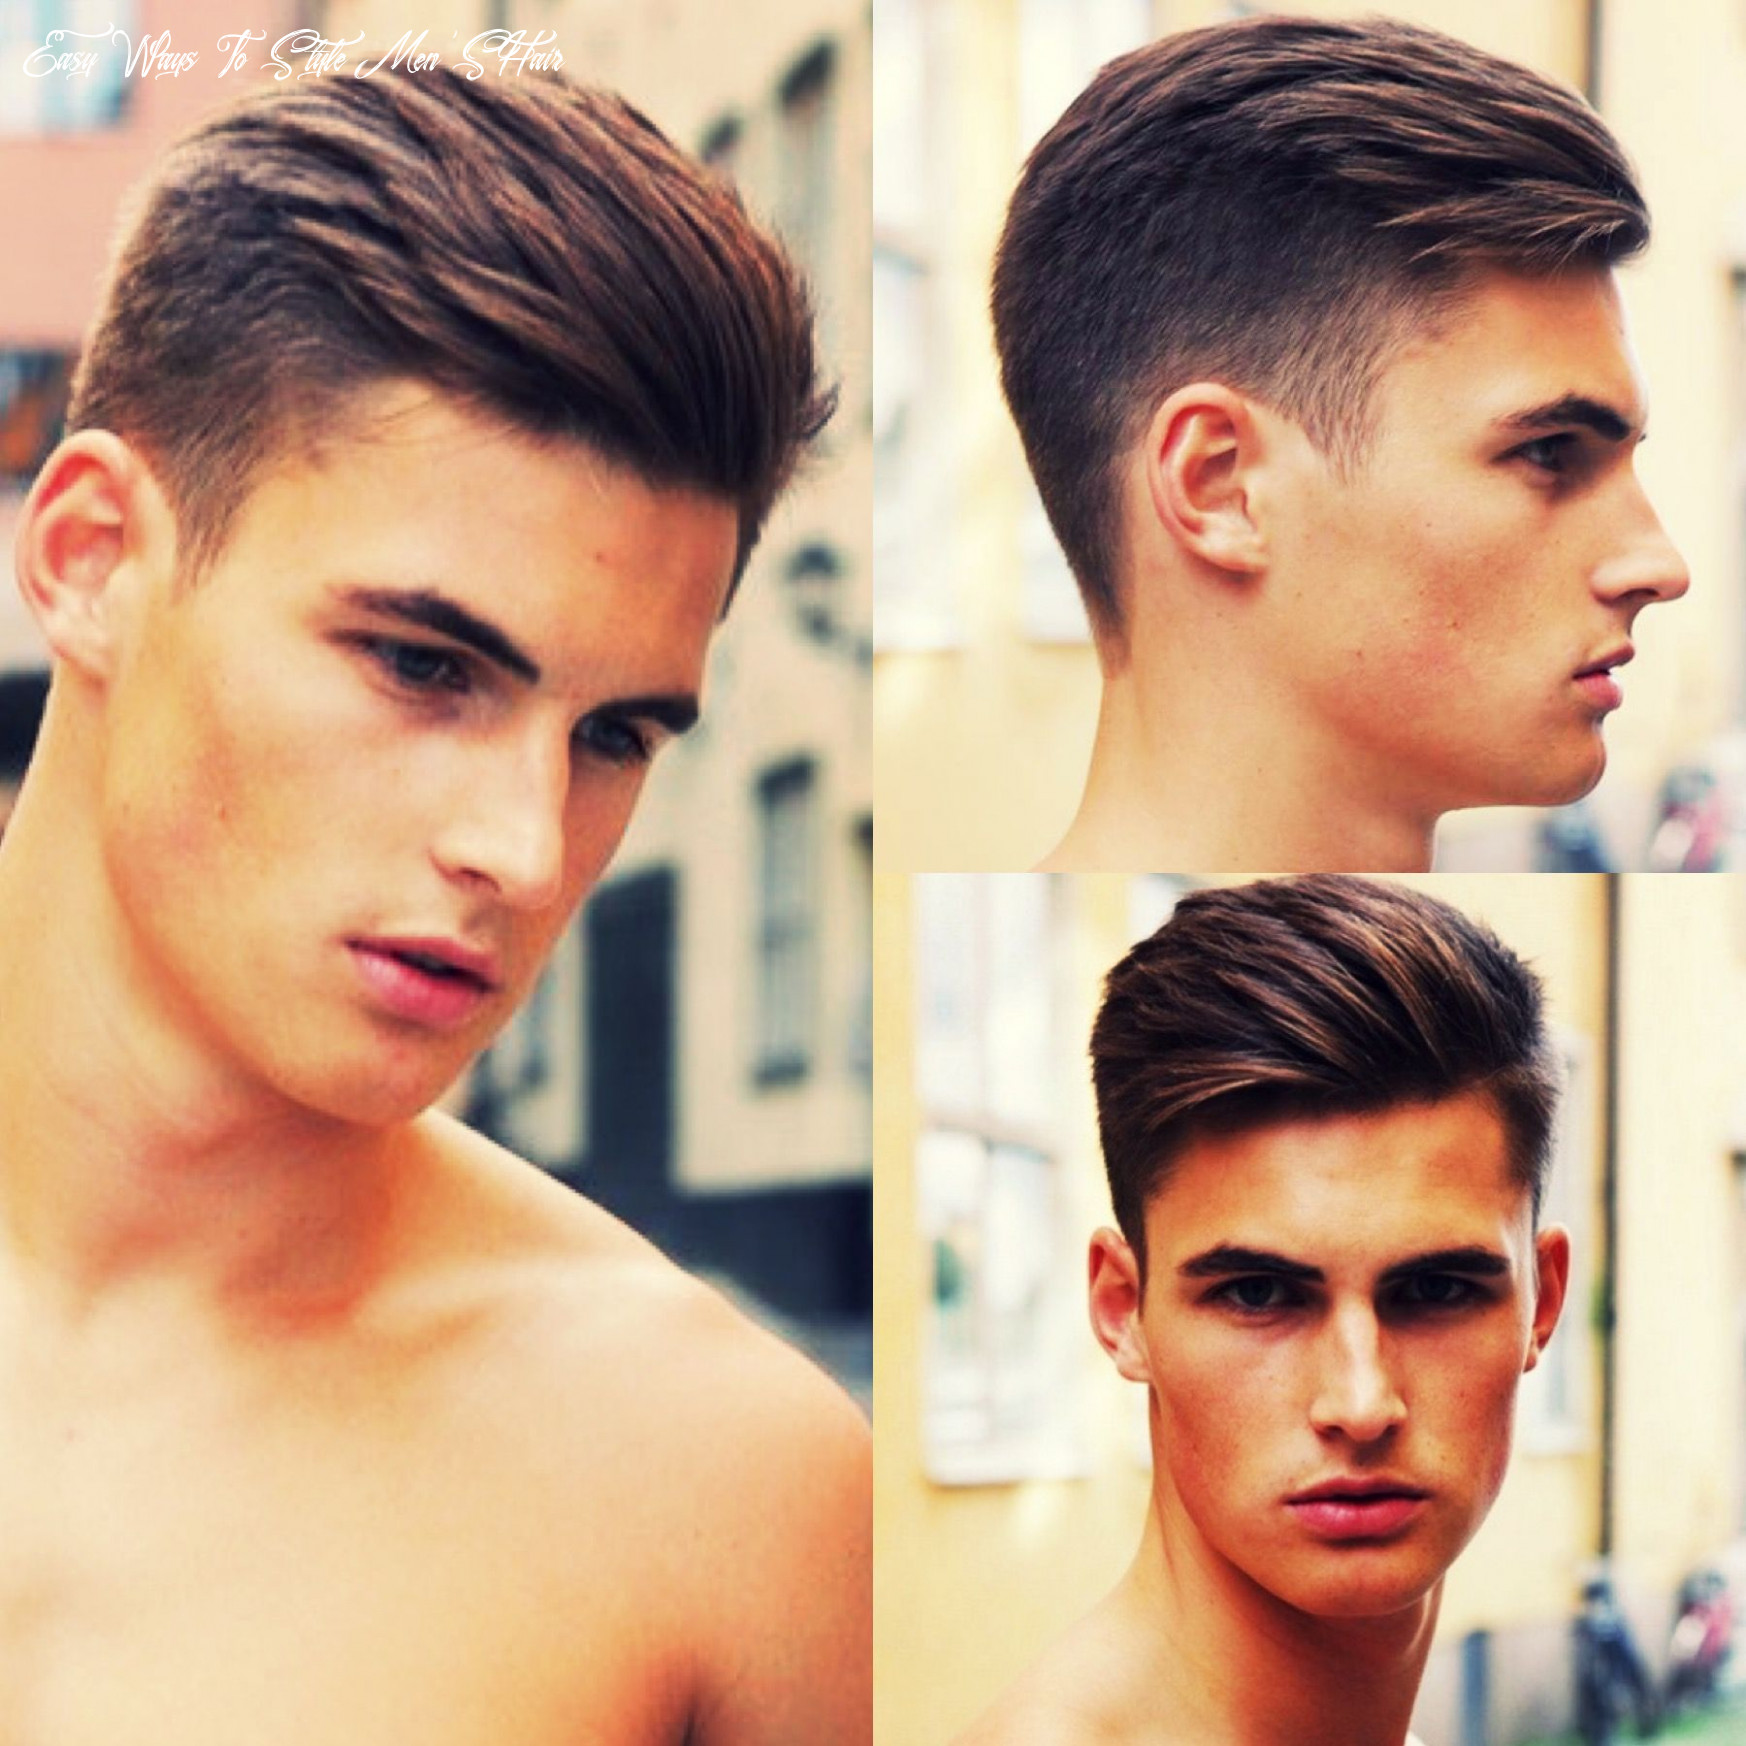 Hairstyle angles | gents hair style, mens hairstyles short, medium